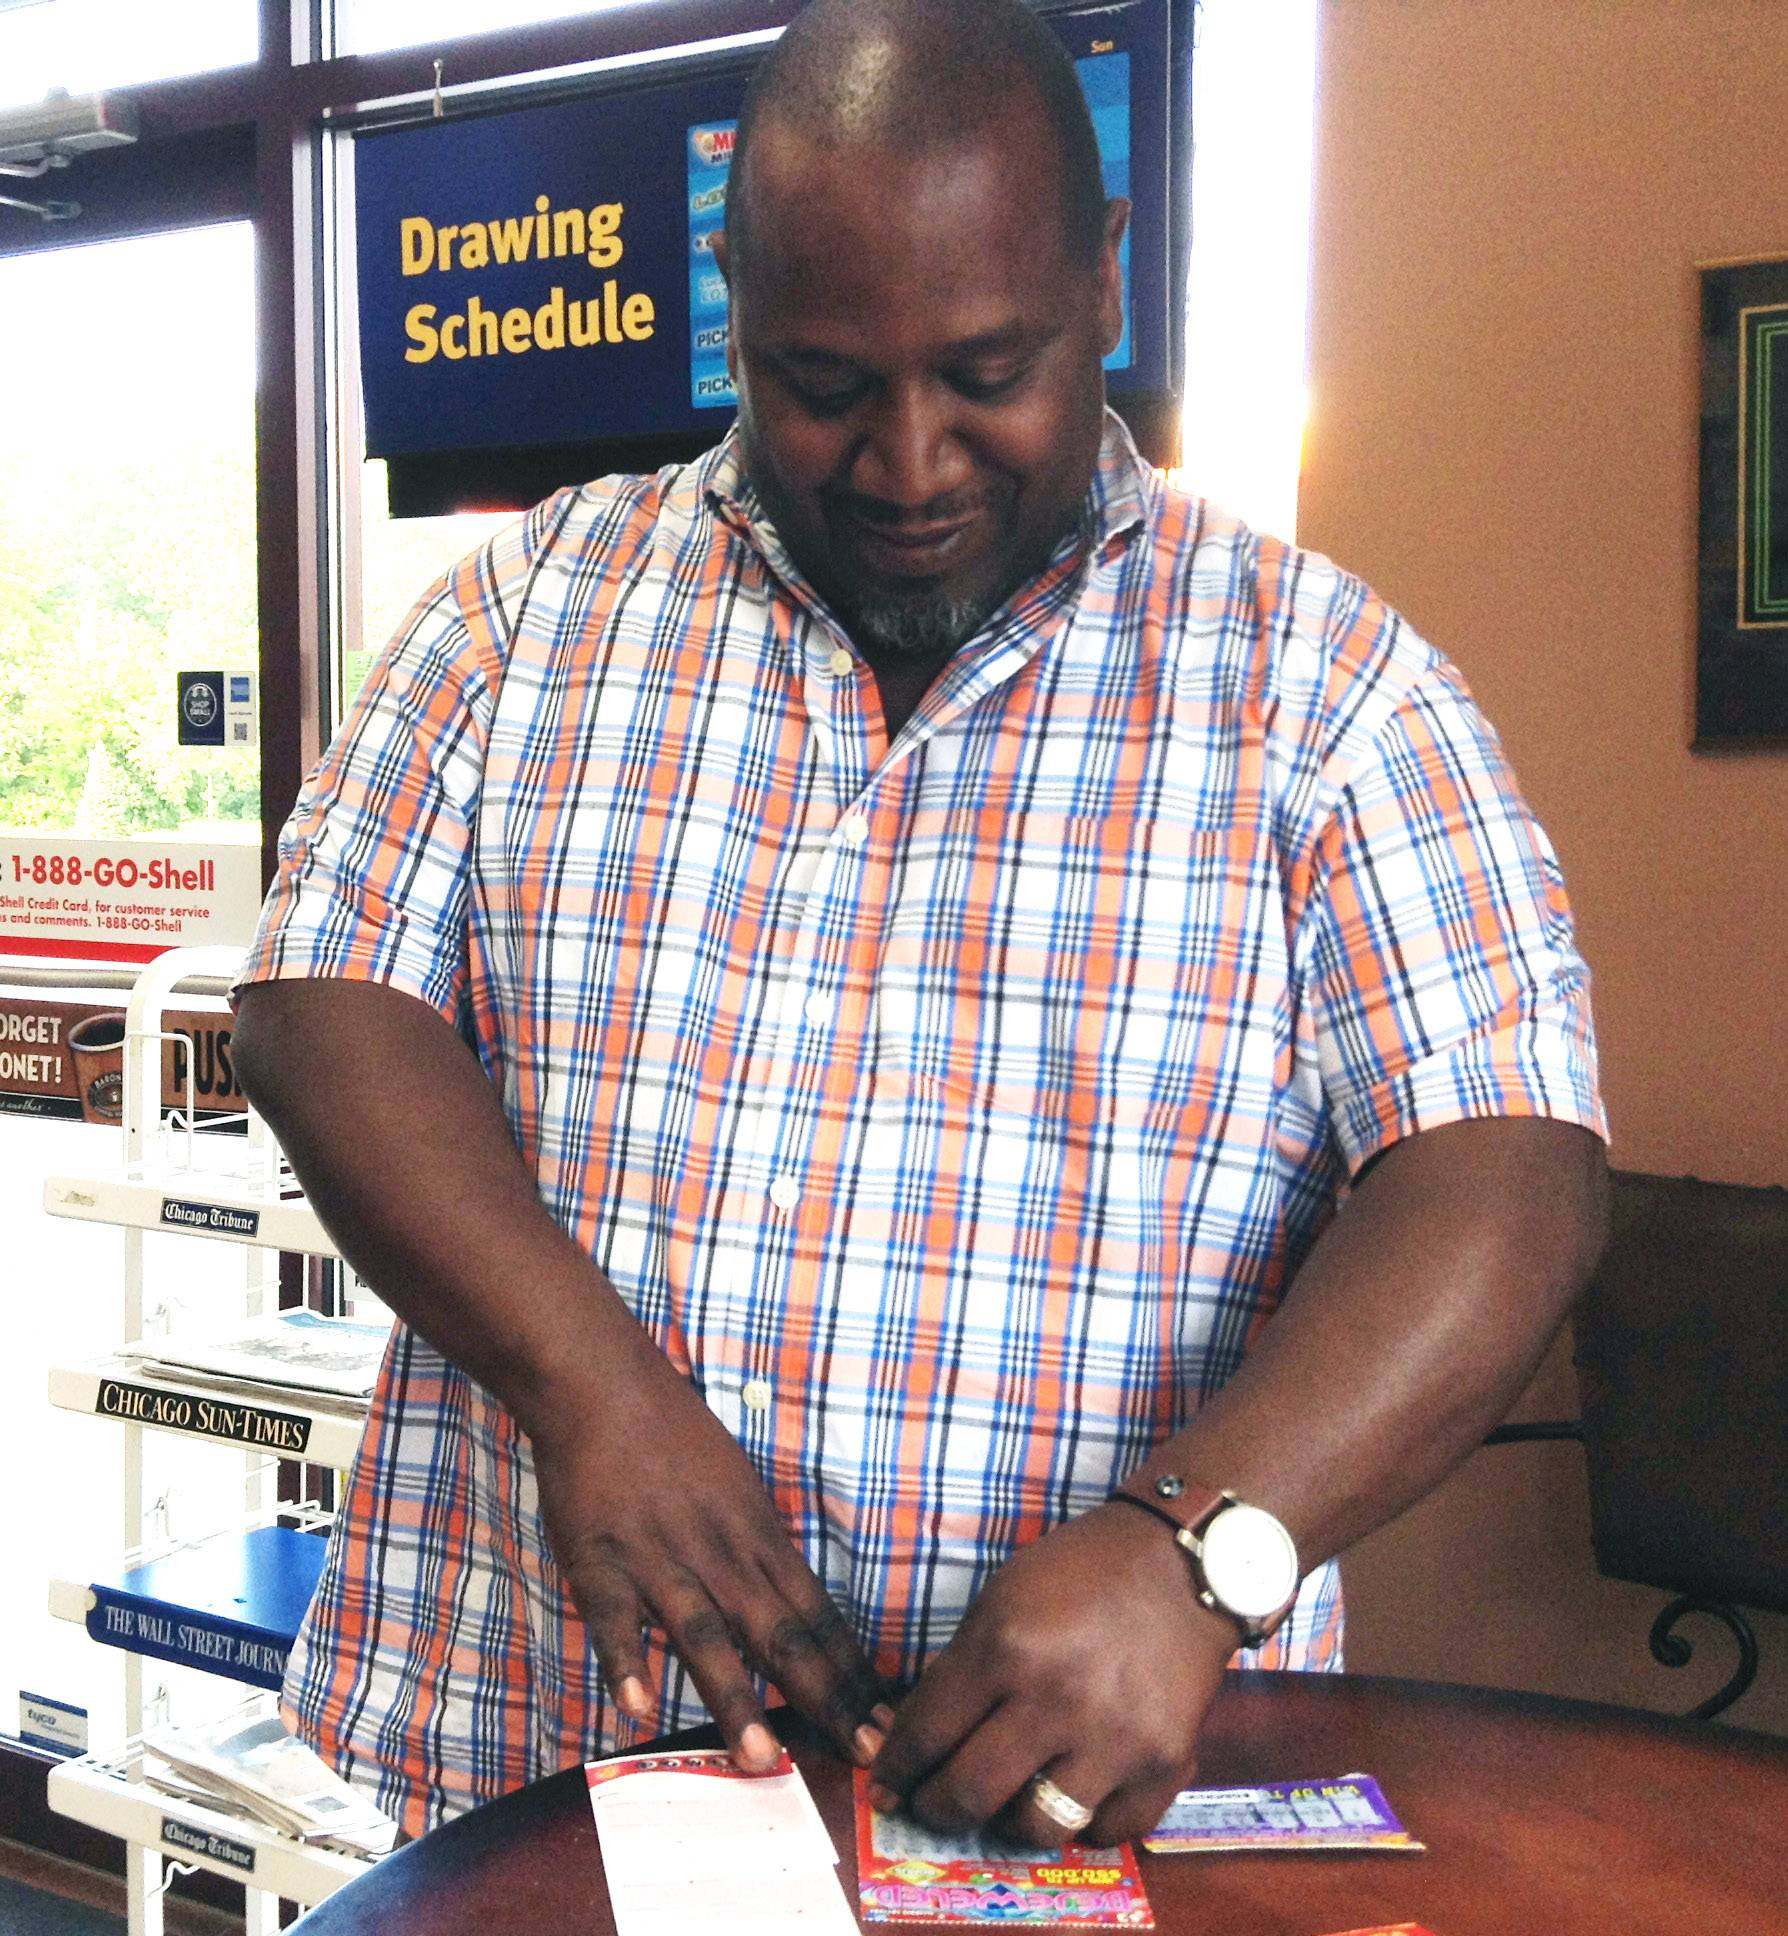 Maurice Shoots of Mundelein buys lottery tickets at the Car Spa Shell in Libertyville.